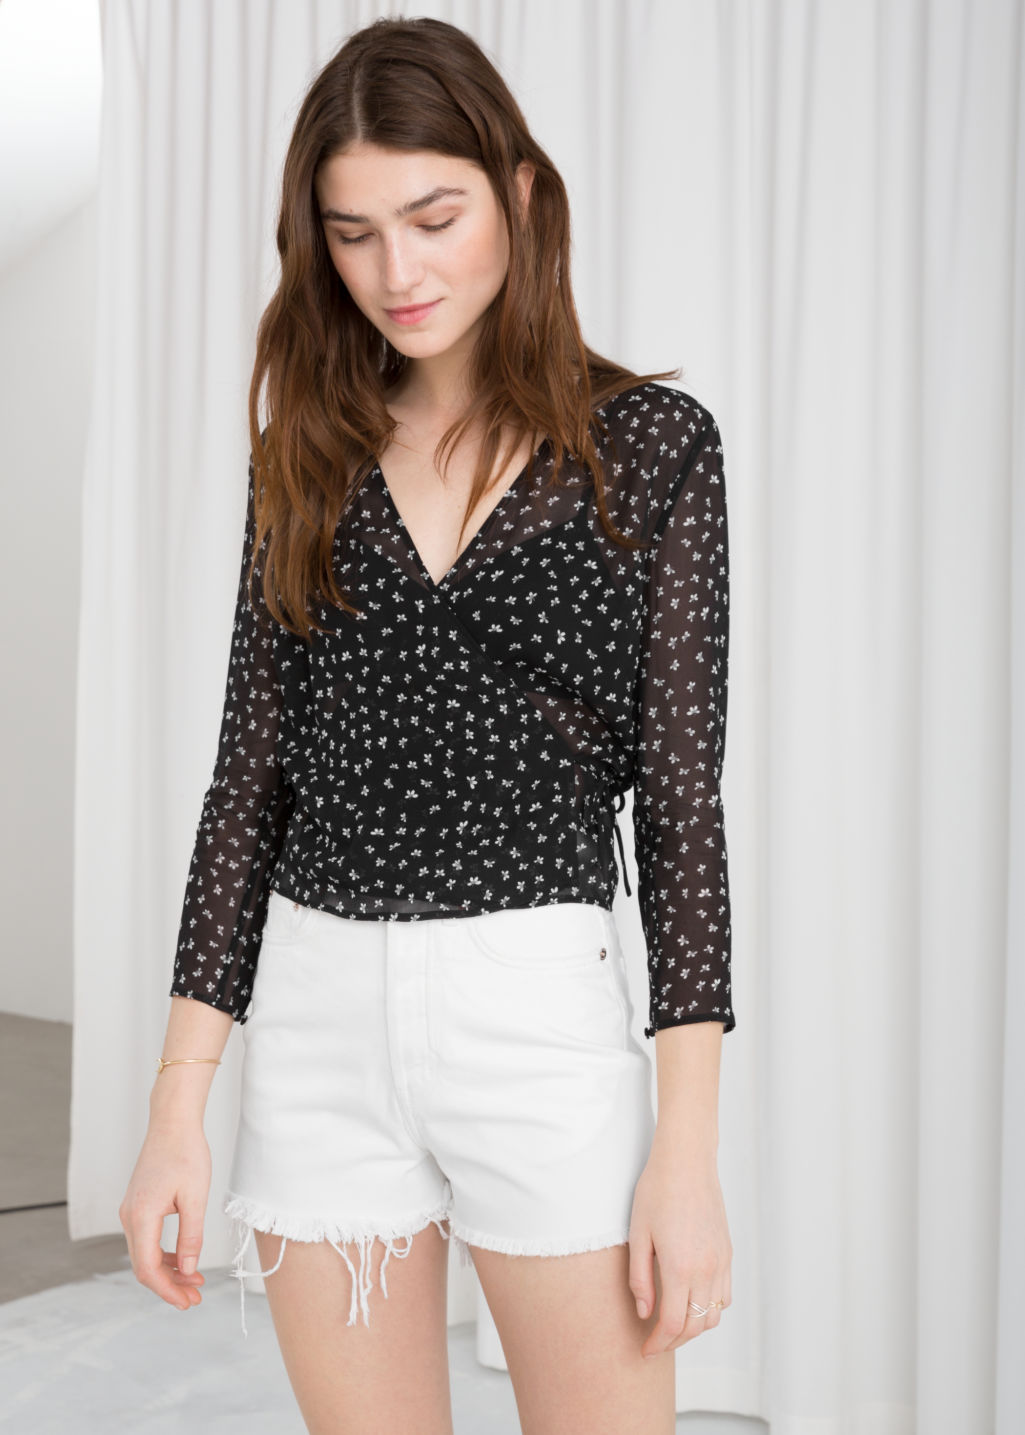 Sheer Wrap Blouse - Micro Floral - Blouses -   Other Stories 13e78cc09